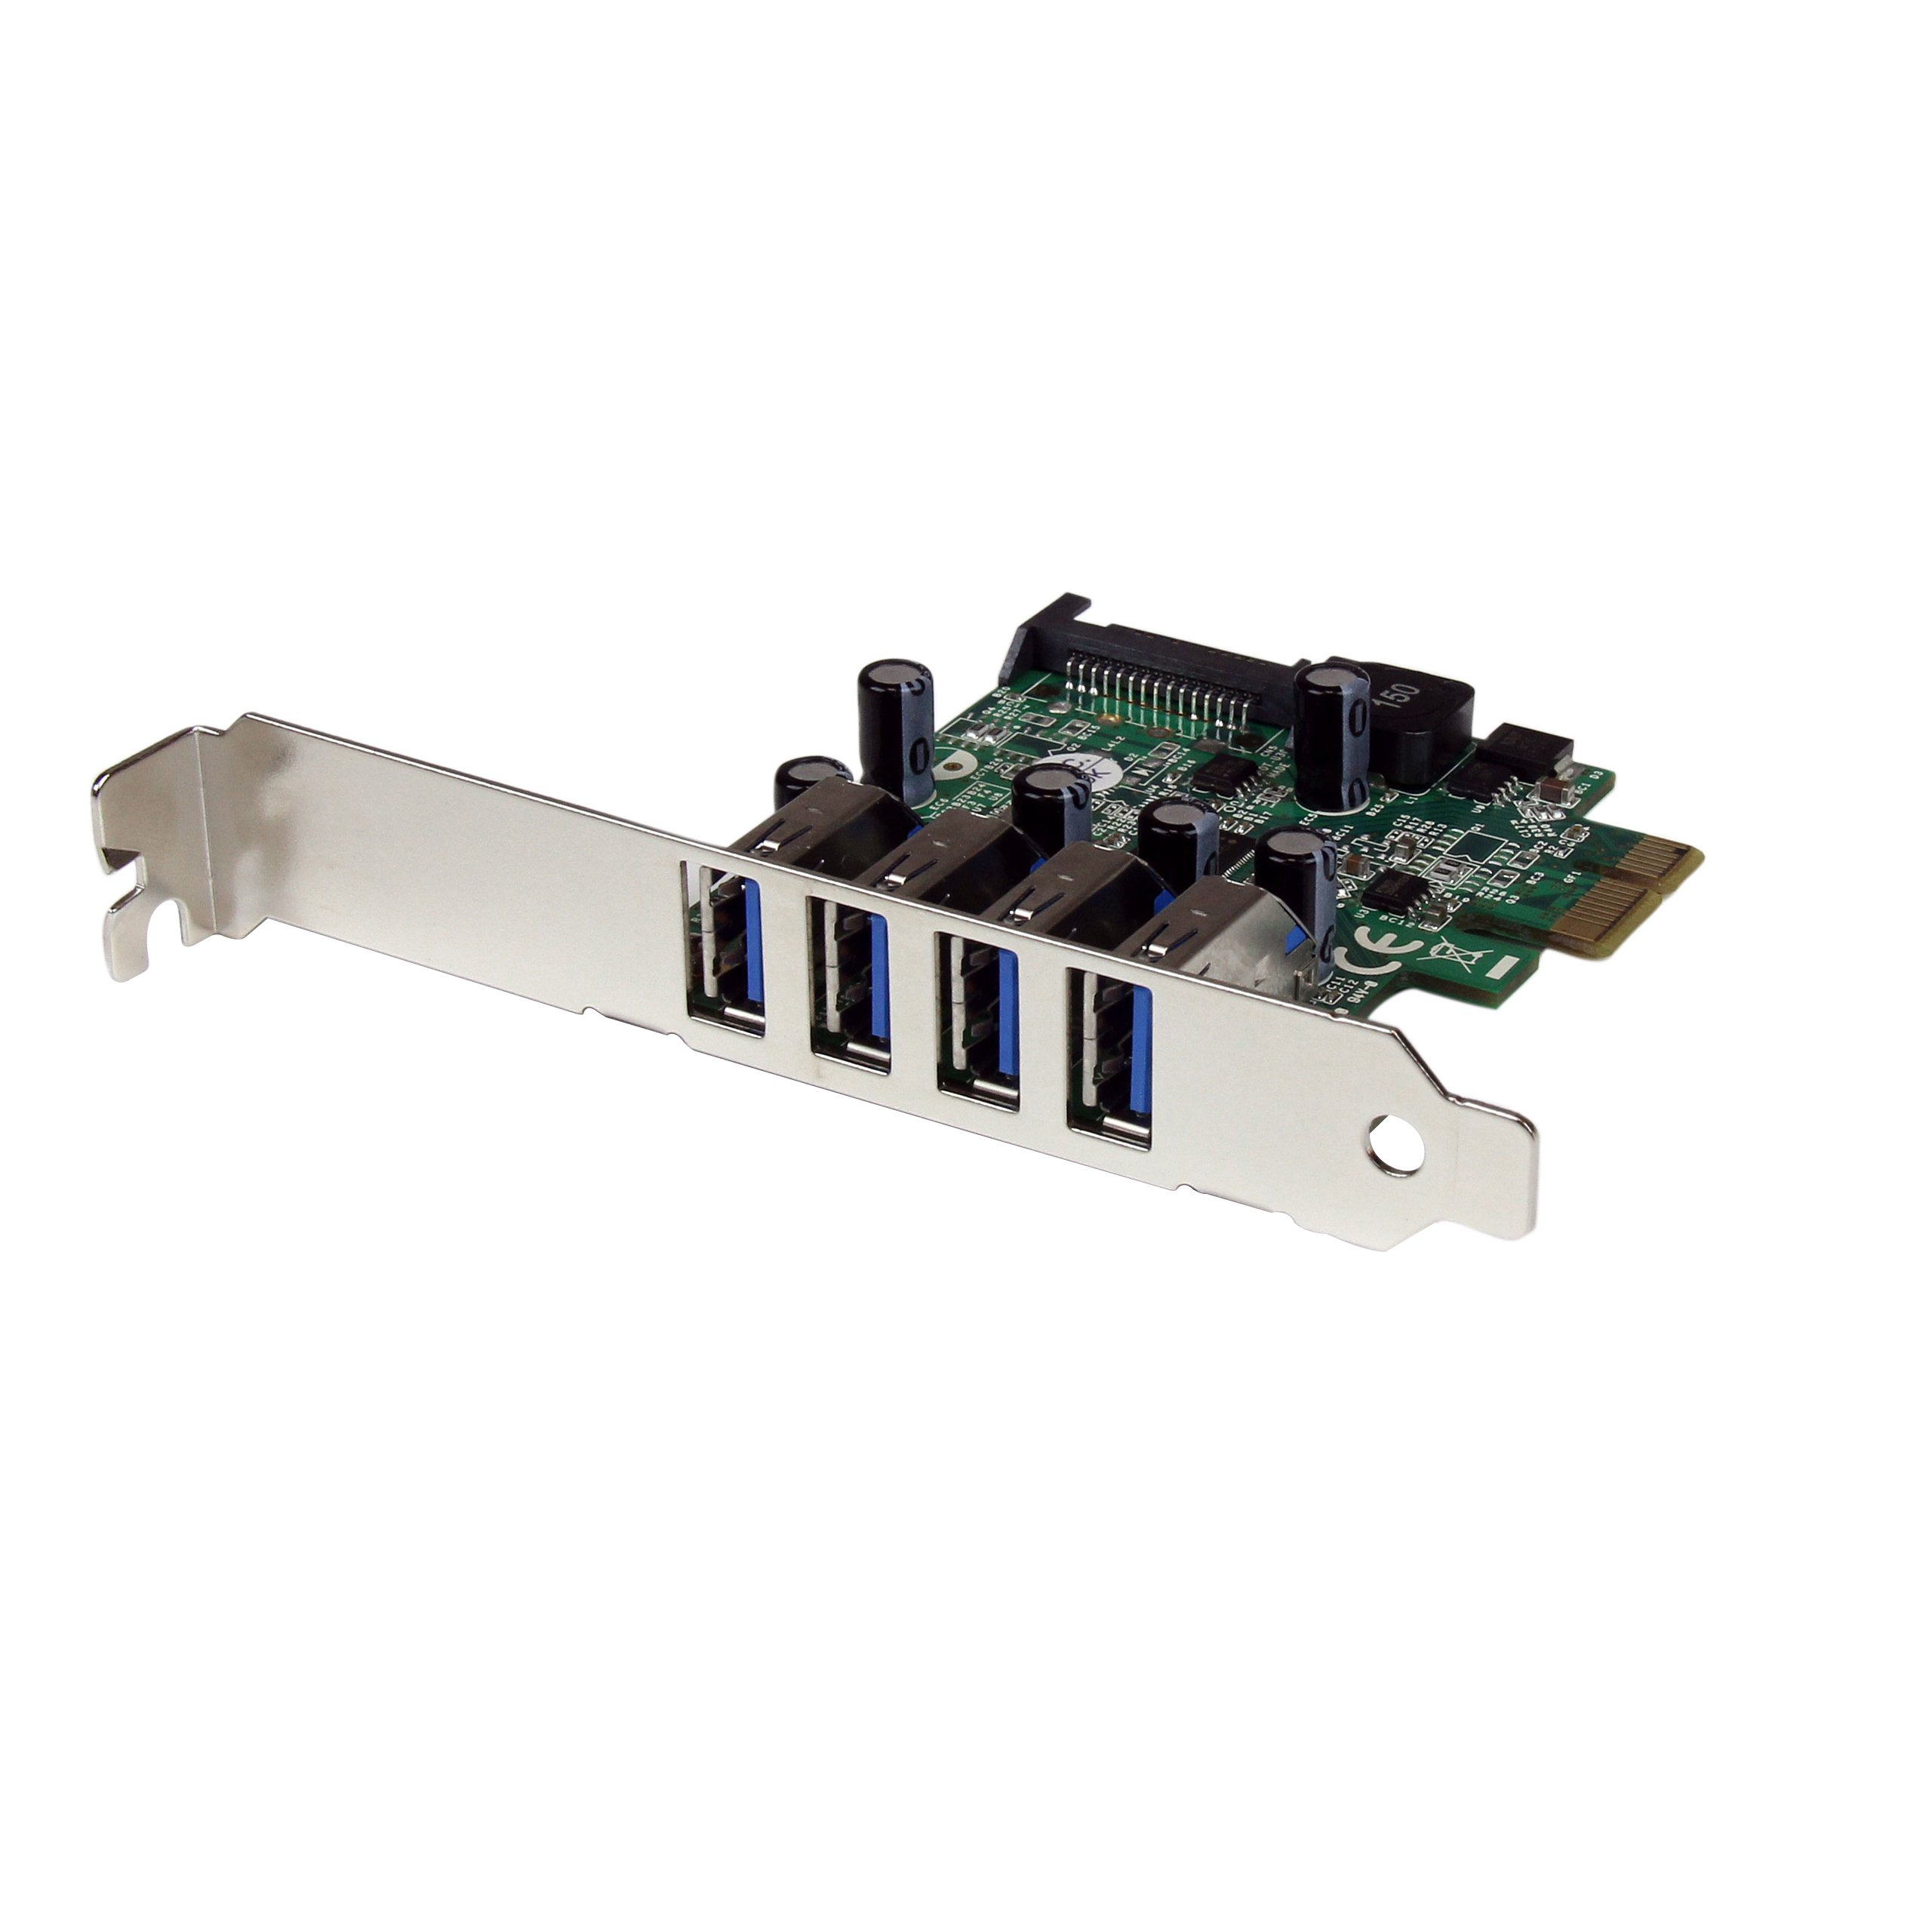 StarTech.com 4 Port PCI Express PCIe SuperSpeed USB 3.0 Controller Card Adapter with UASP - SATA Power - USB 3 PCIe Card (PEXUSB3S4V) by StarTech